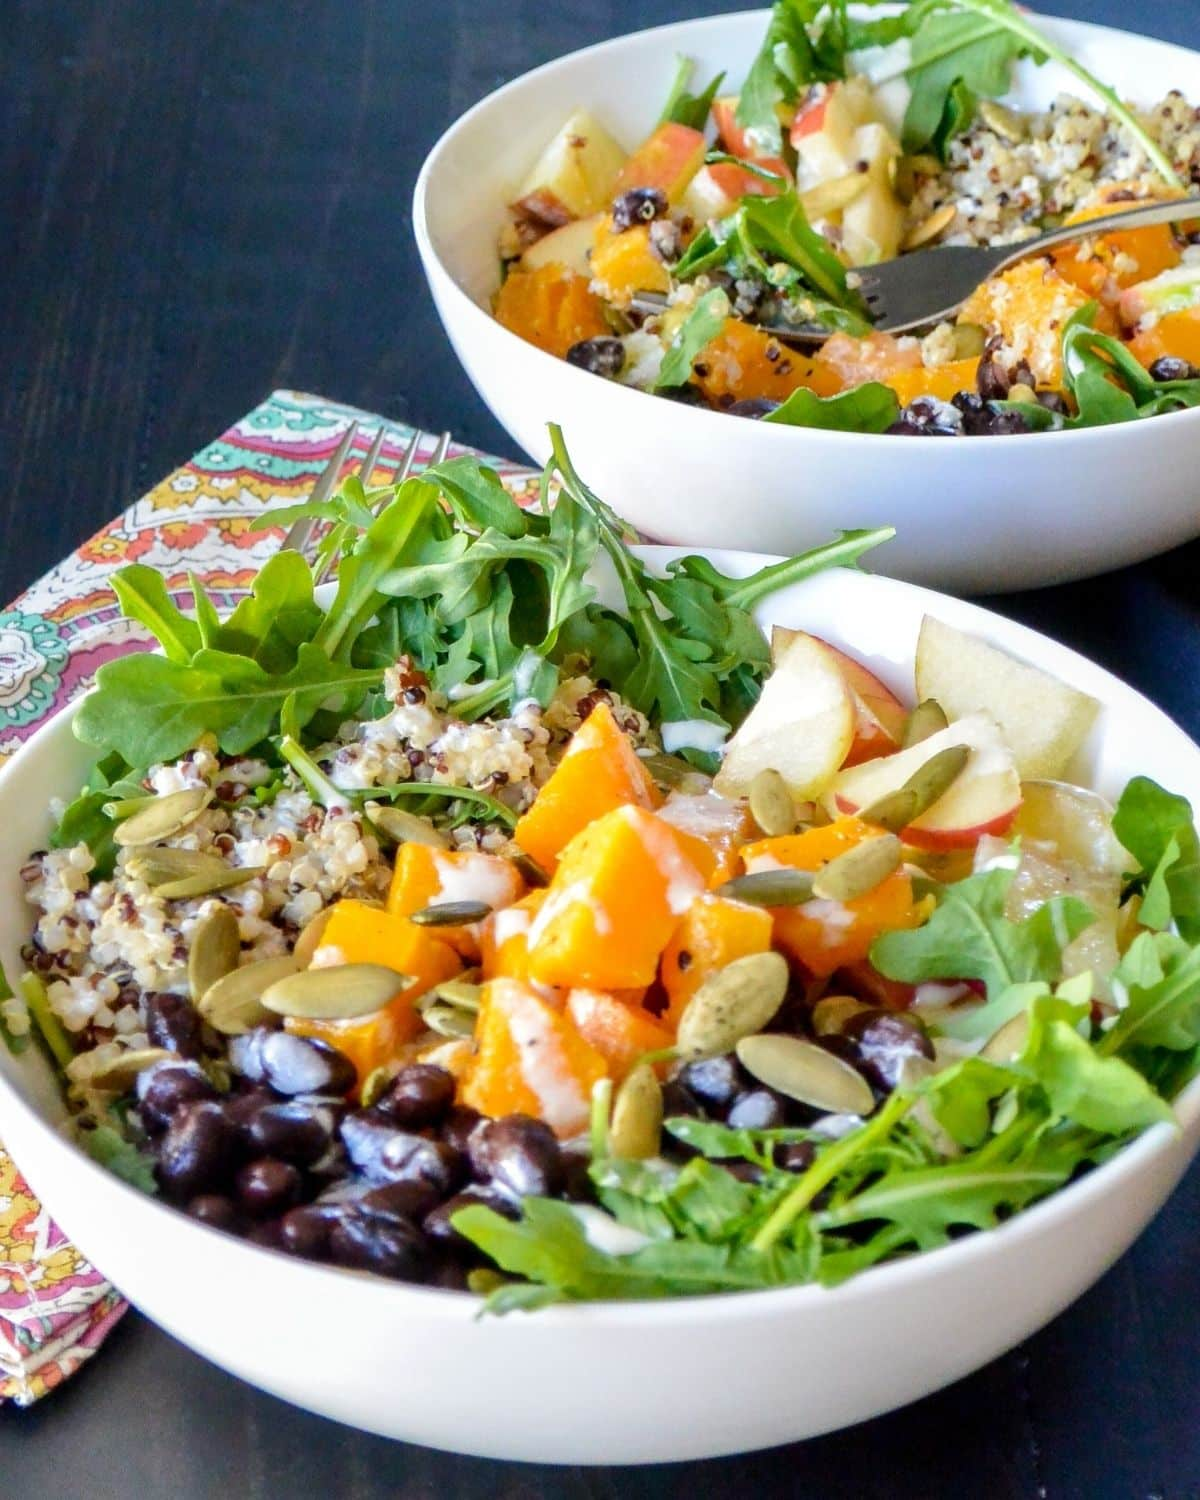 Two quinoa power bowls on a table ready to eat.